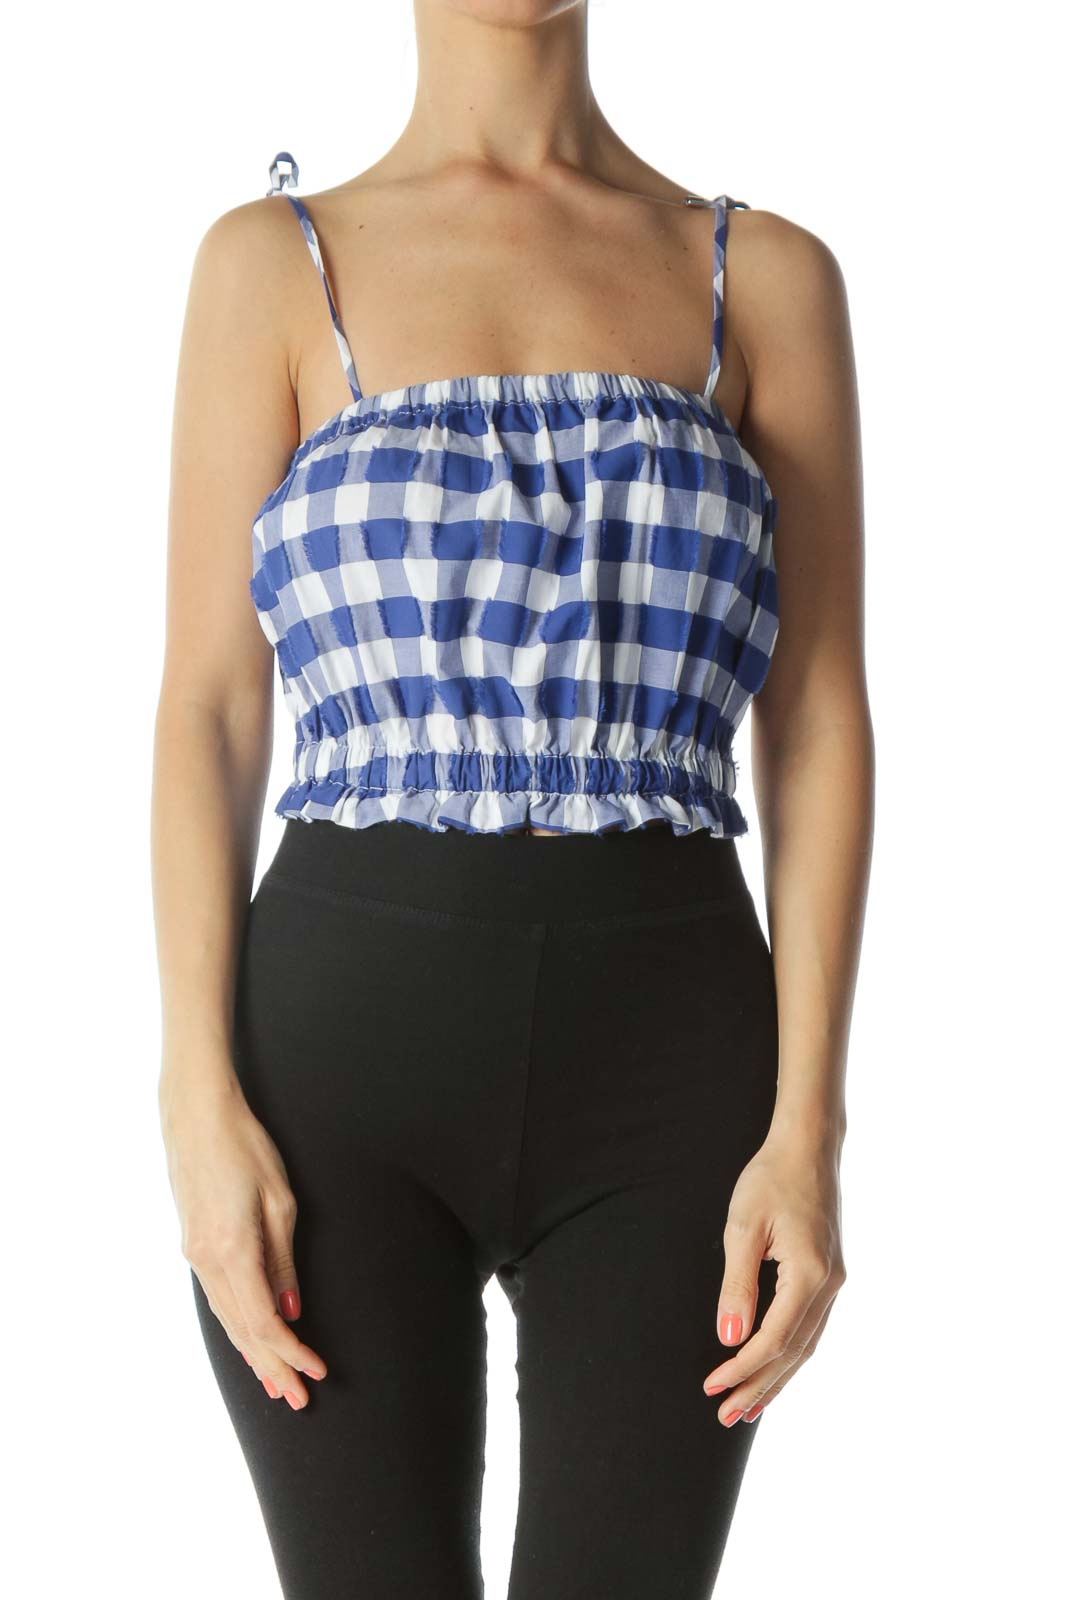 Blue/White Gingham Detailed Raw-Hem-Squares 100% Cotton Top Front